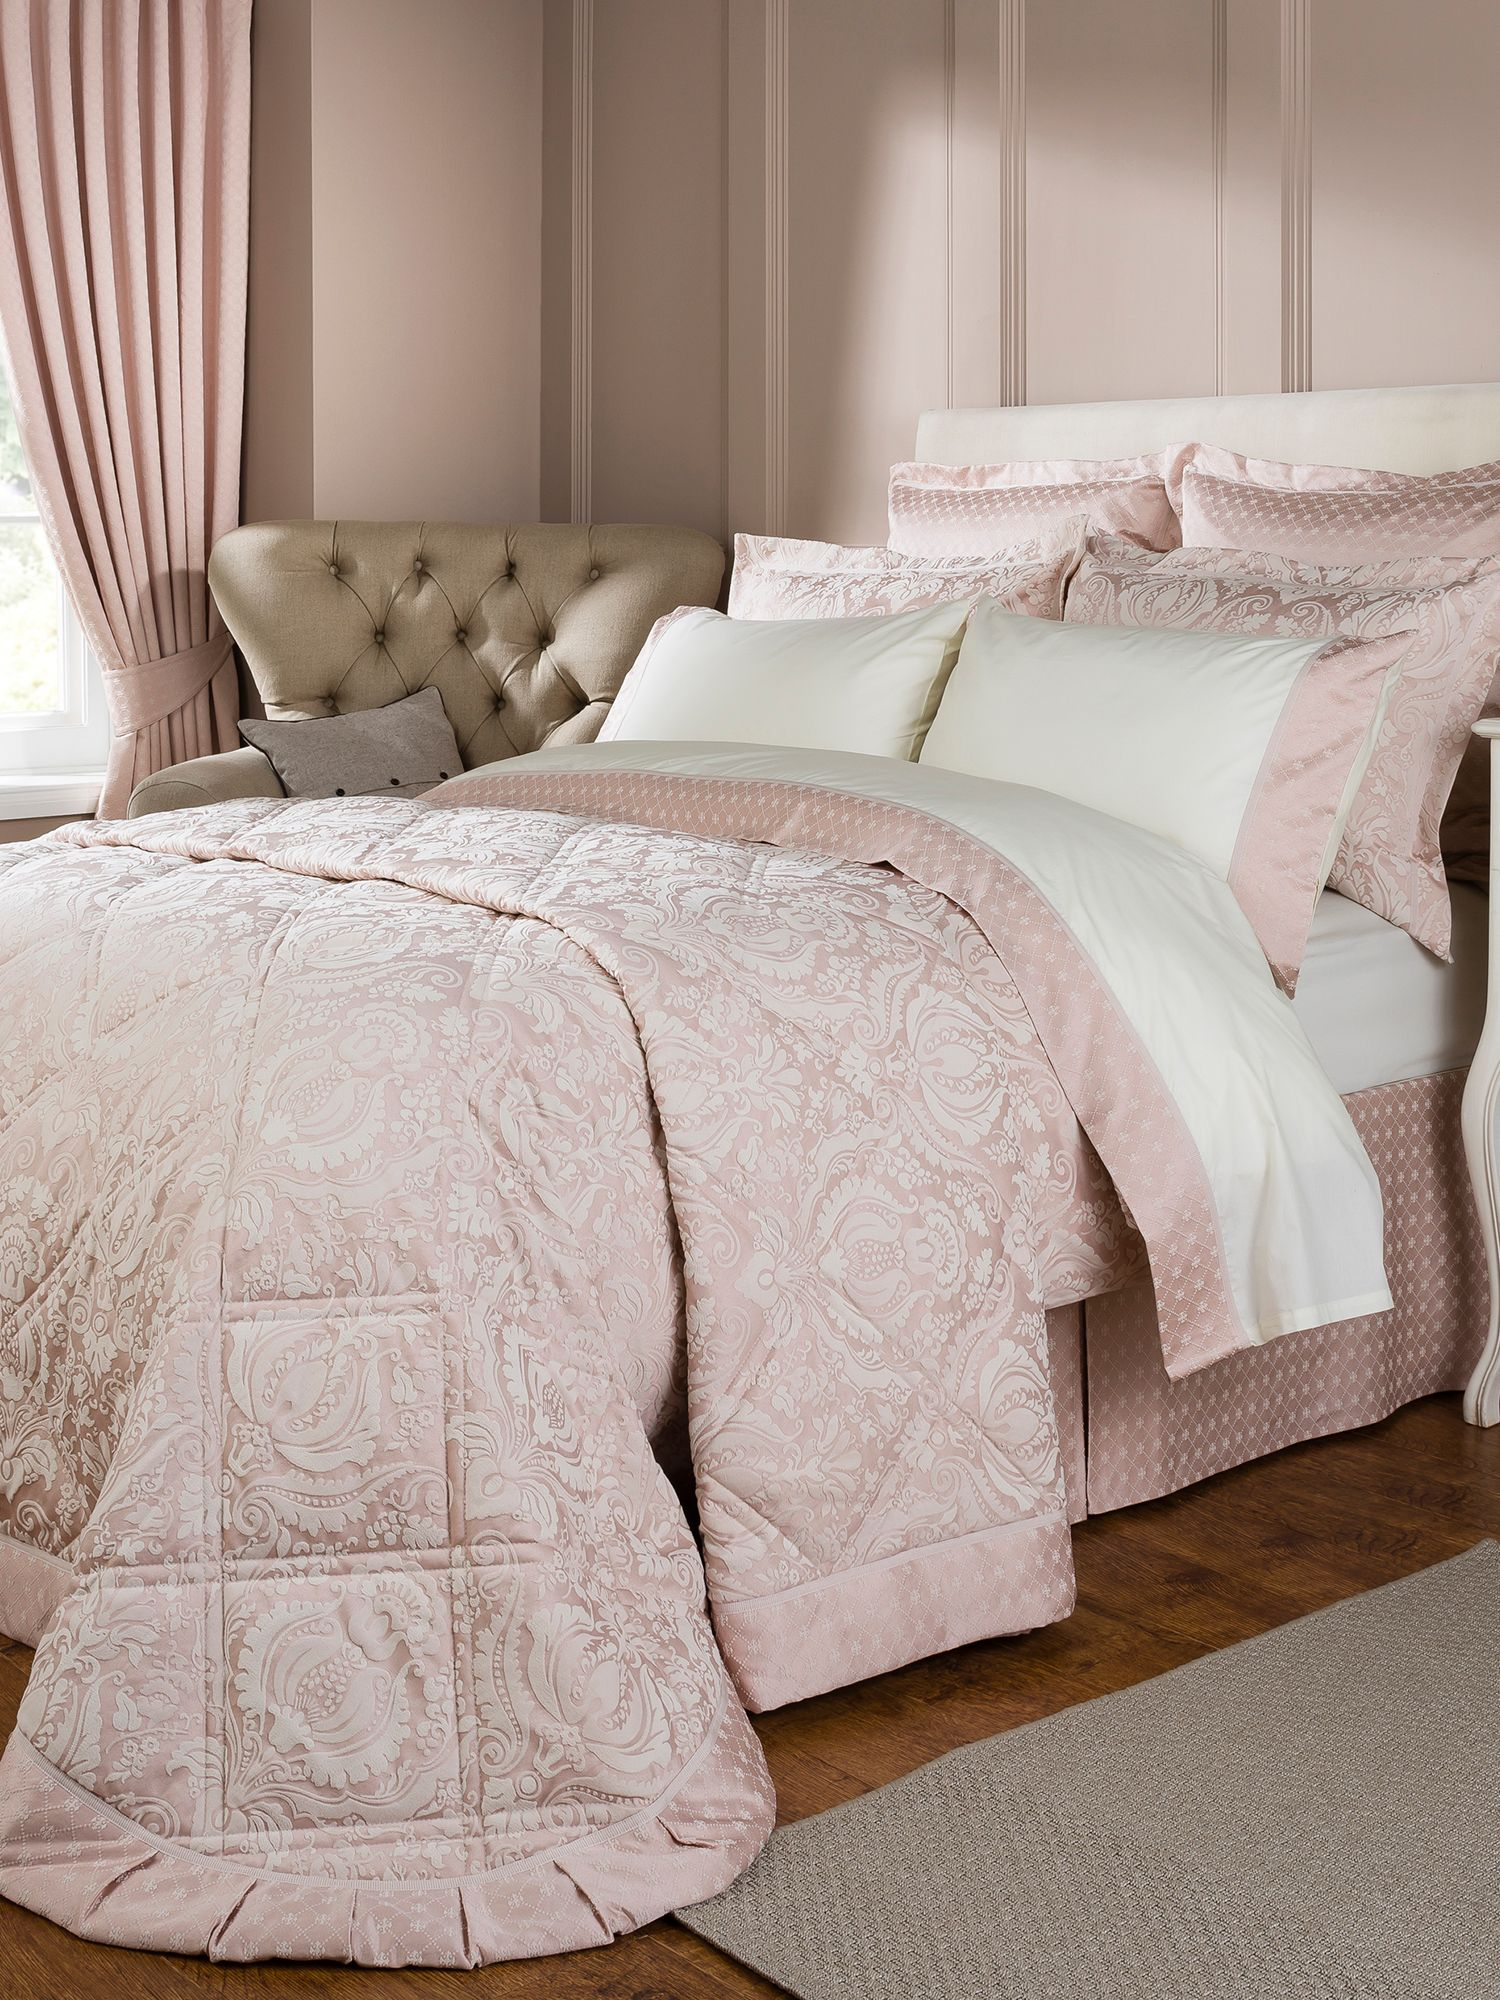 Limoges super kingflatsheet rose pink